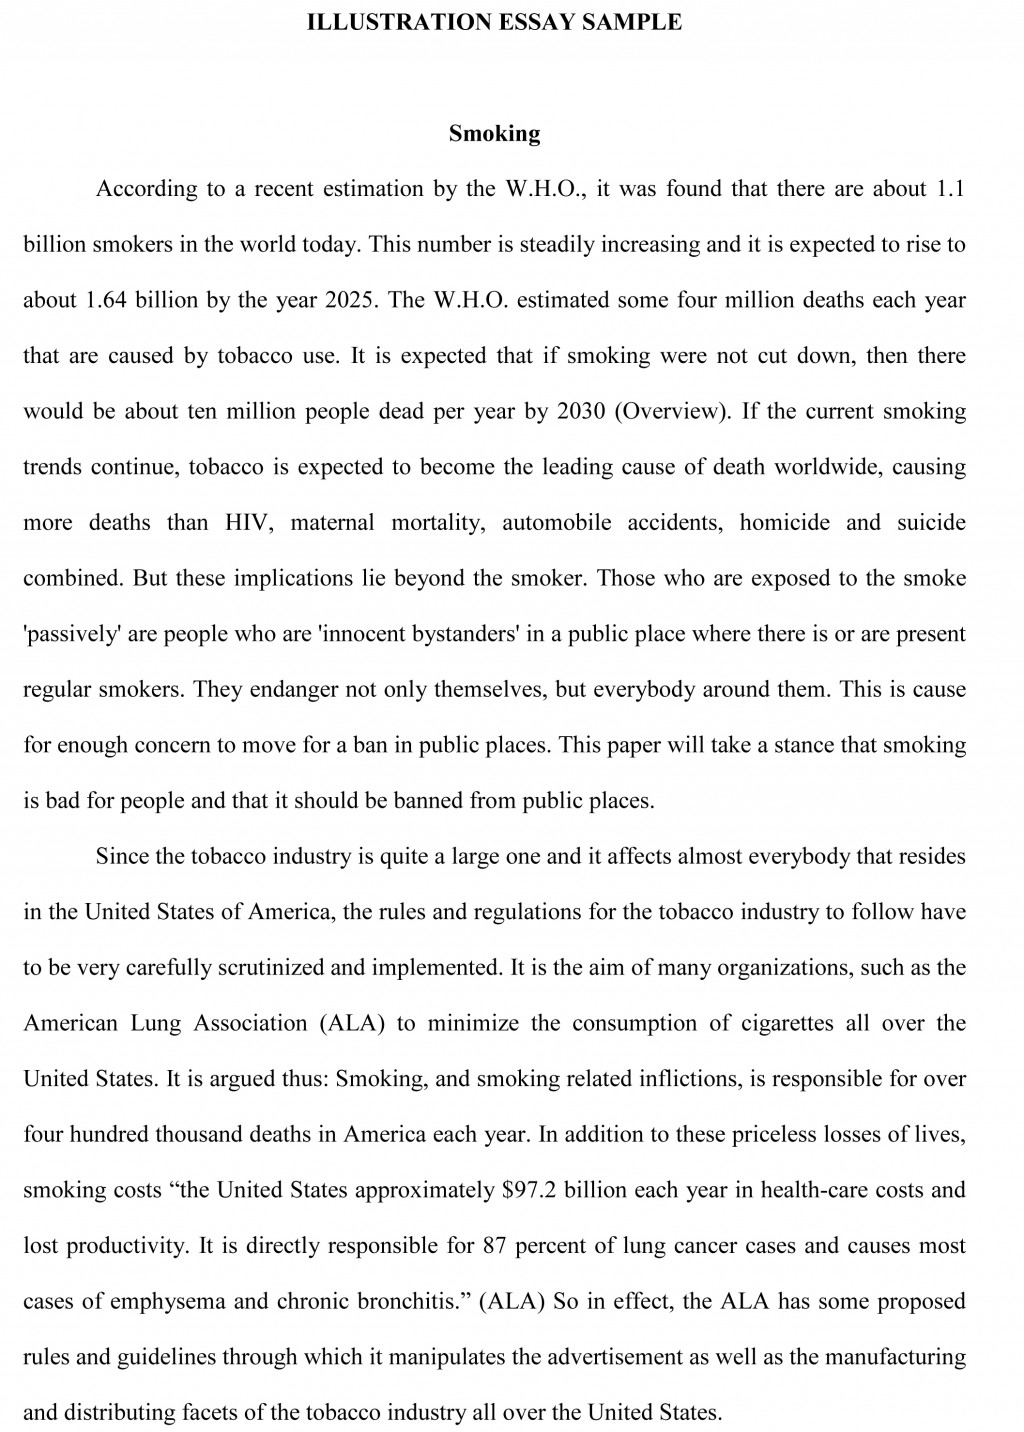 021 Illustration Essay Sample Example Descriptive Exceptional Topics Writing For Ibps Po Mains High School Students Prompts Large